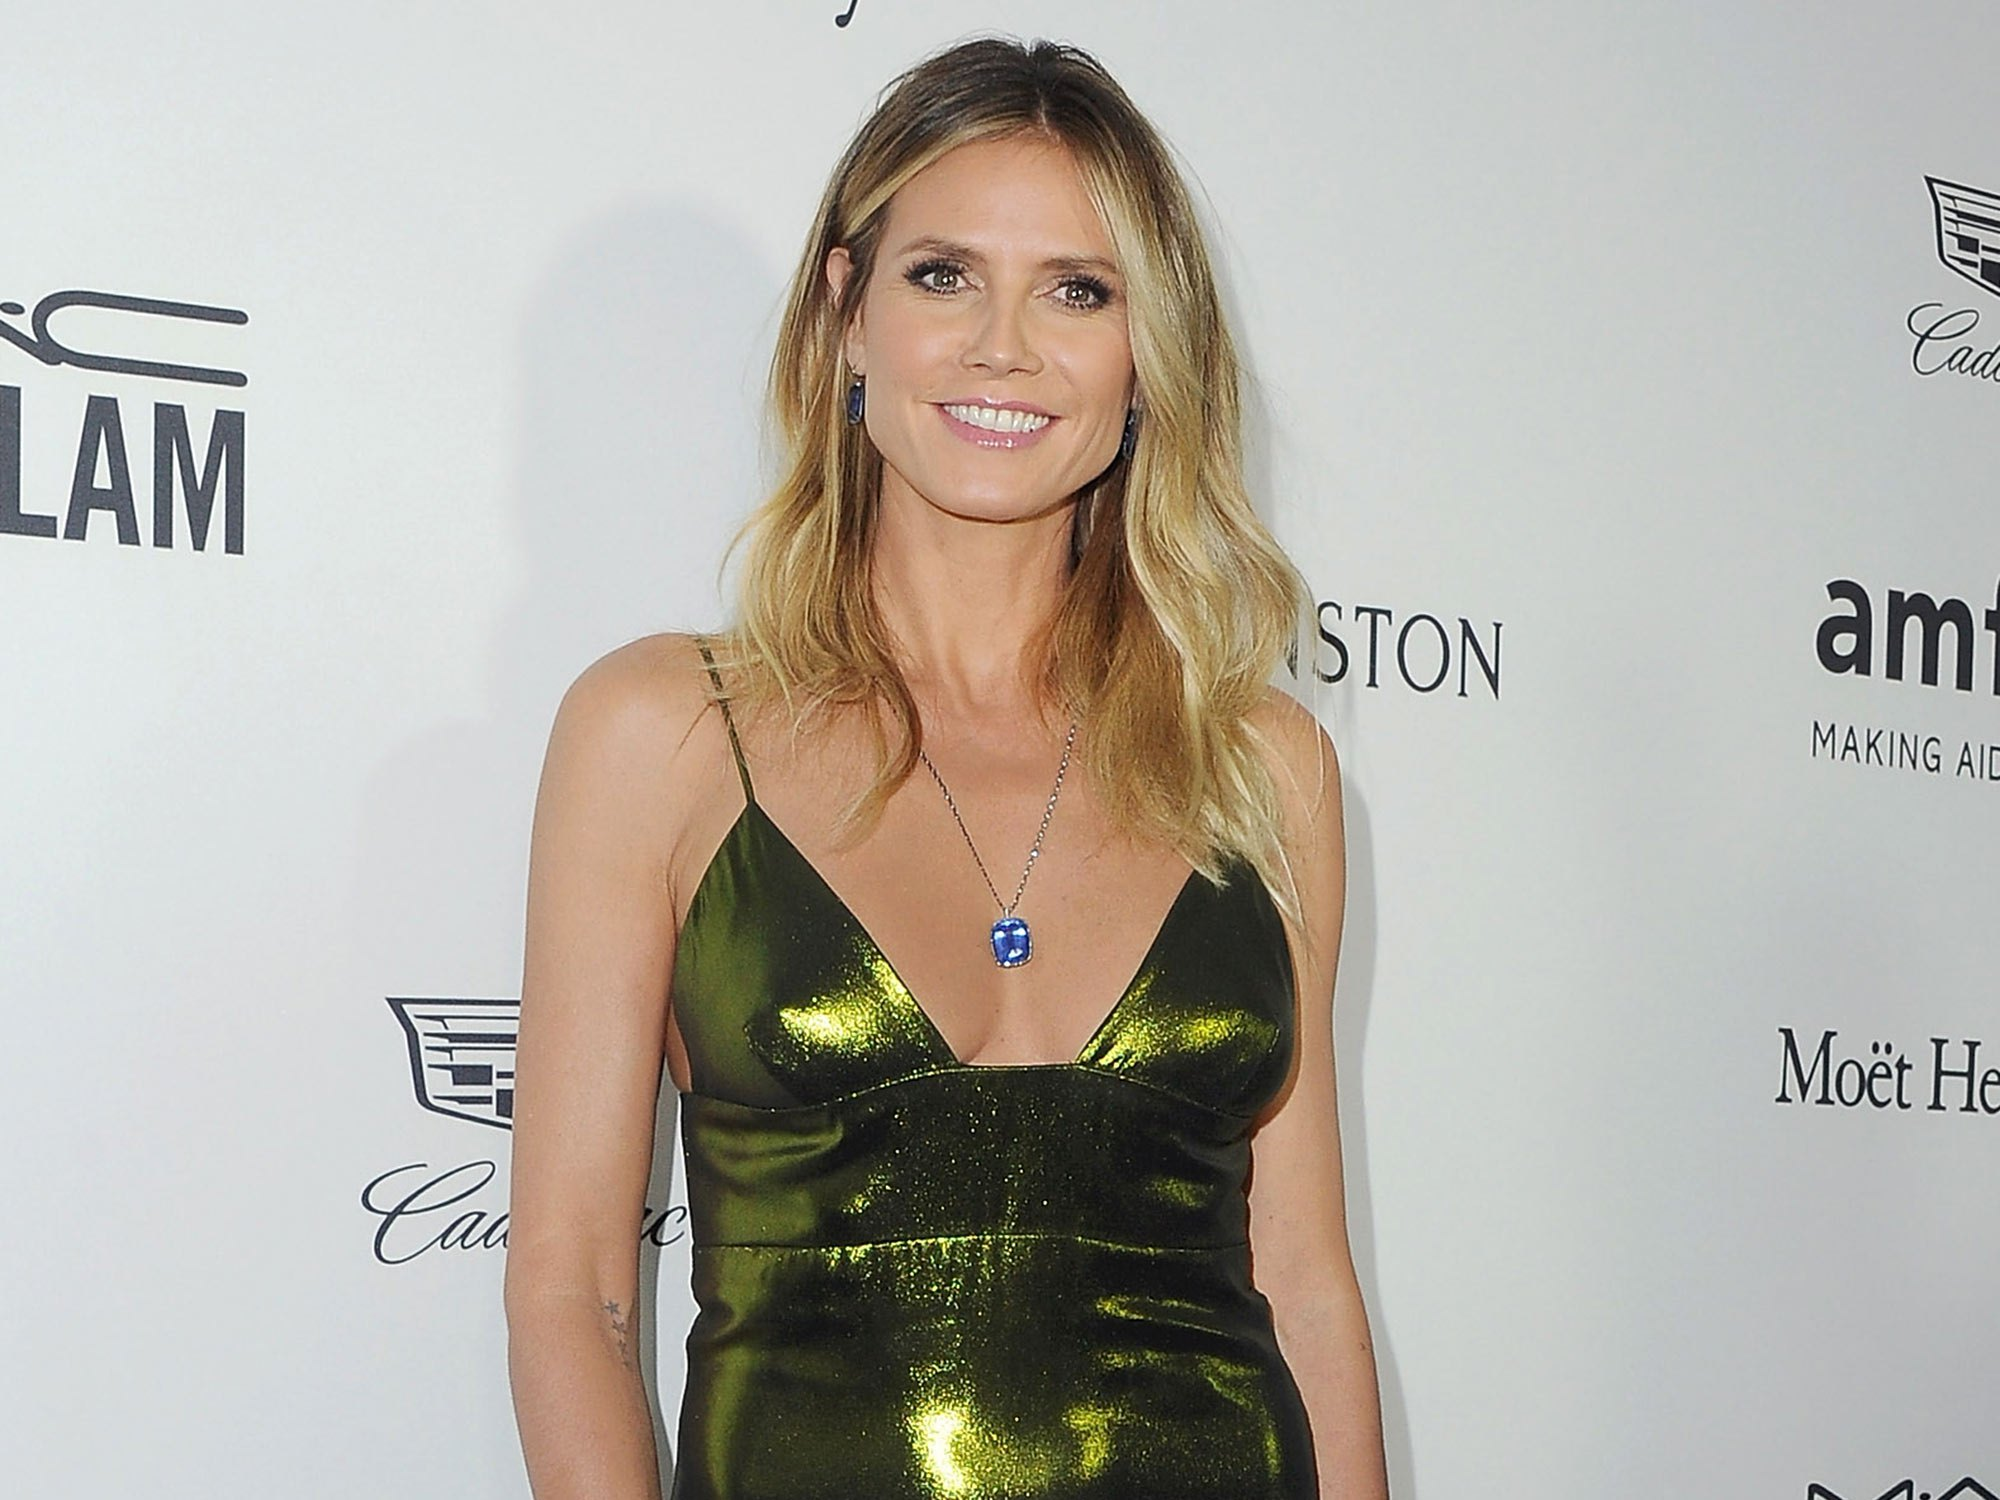 Heidi Klum promises to be topless on the beach when she's 60, and we're so here for it